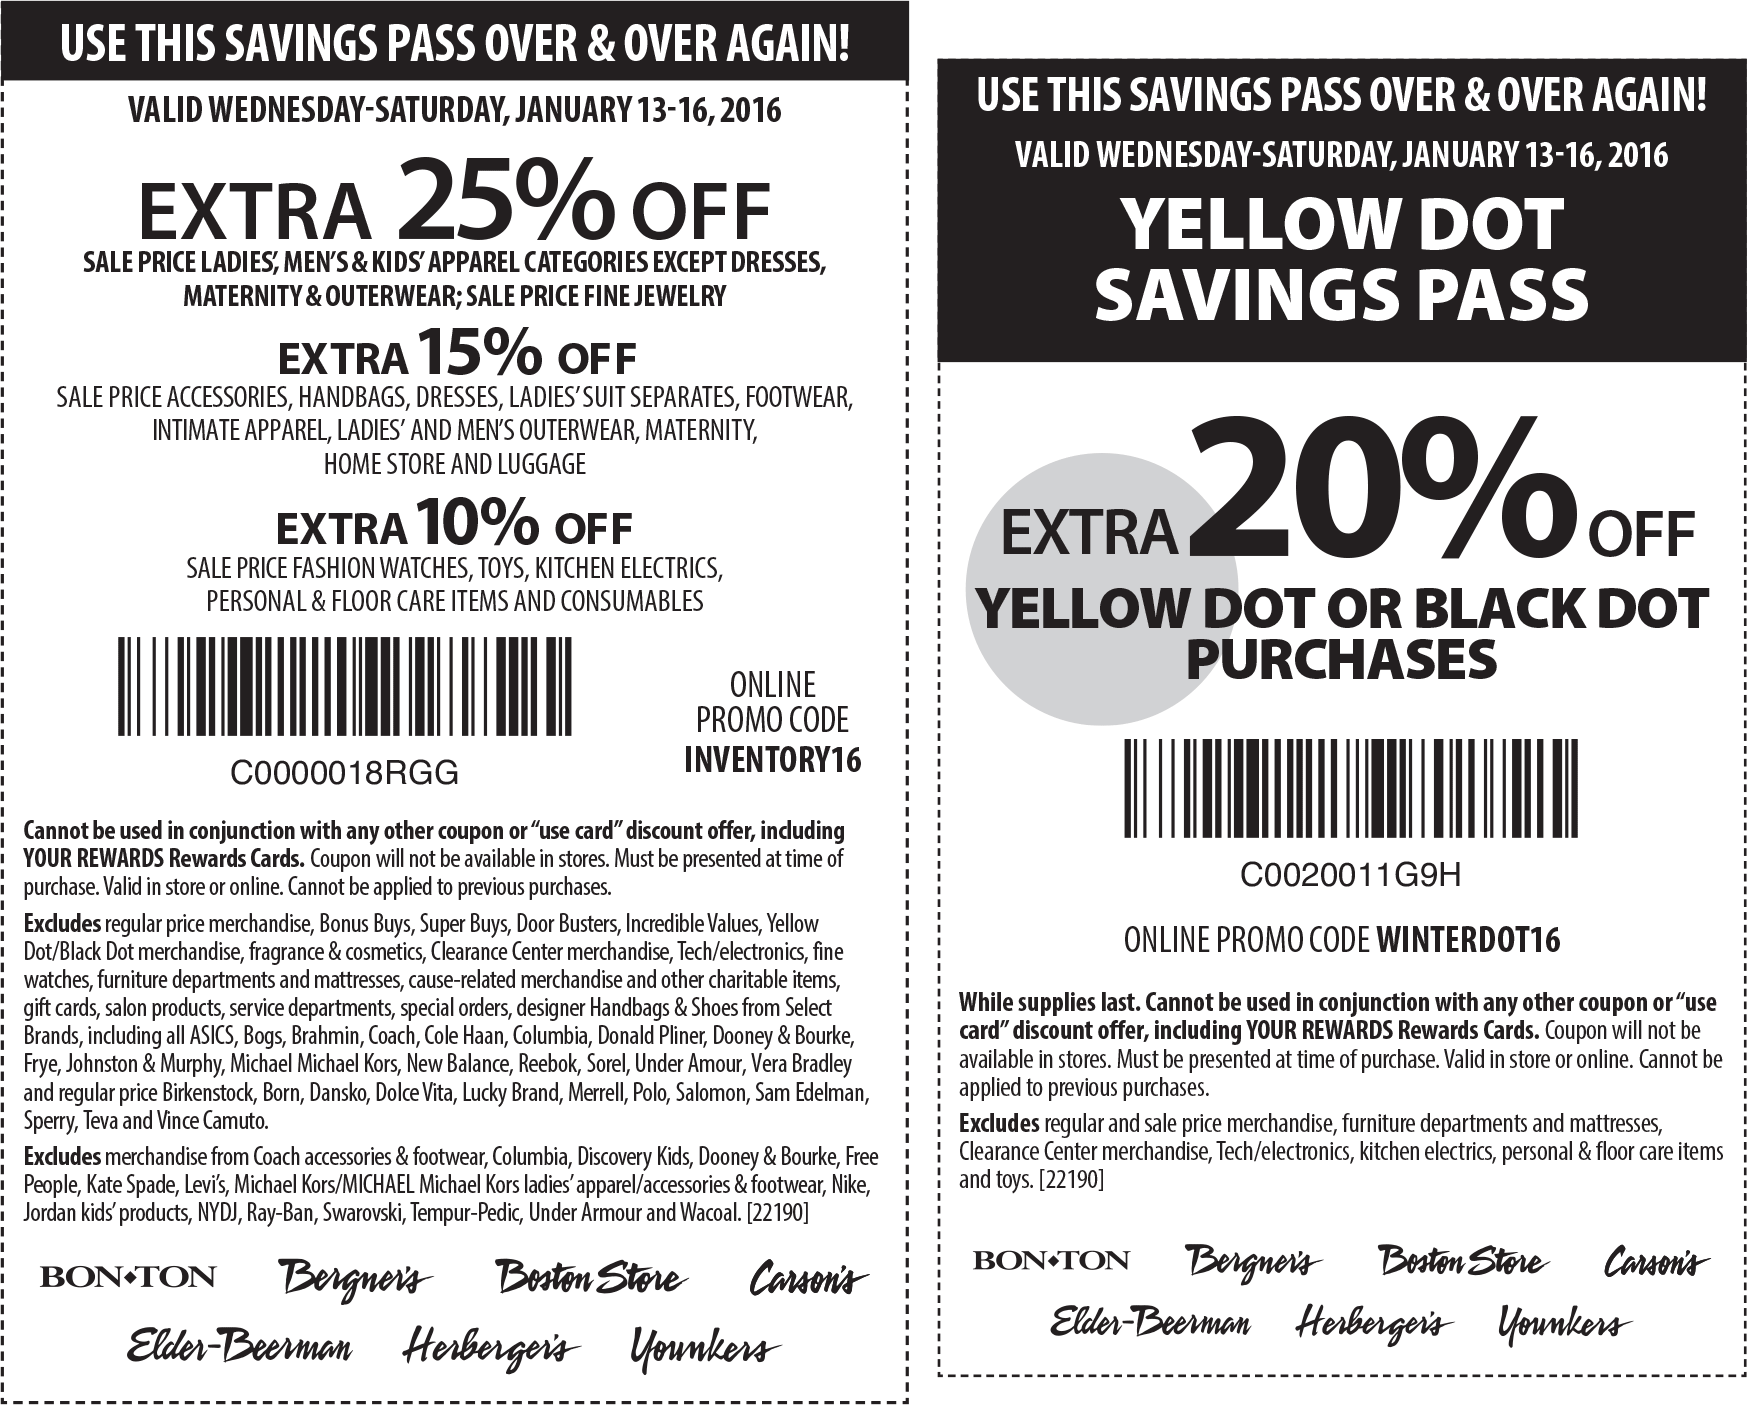 Carsons Coupon February 2017 Extra 25% off & more at Bon Ton, Carsons & sister stores, or online via promo code INVENTORY16